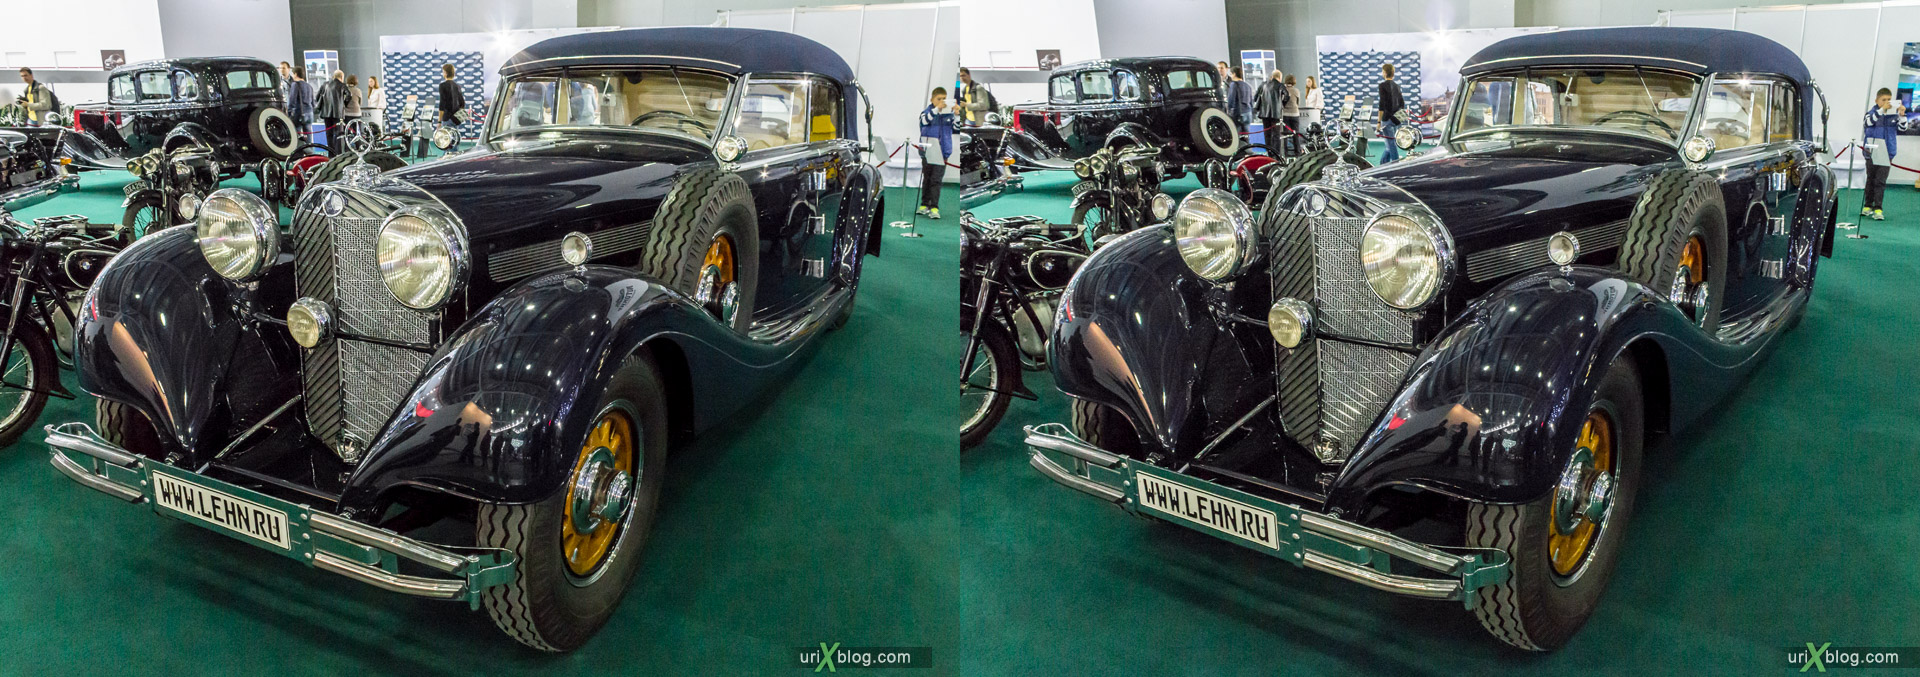 2014, Old Mercedes-Benz, Moscow International Automobile Salon, MIAS, Crocus Expo, Moscow, Russia, augest, 3D, stereo pair, cross-eyed, crossview, cross view stereo pair, stereoscopic